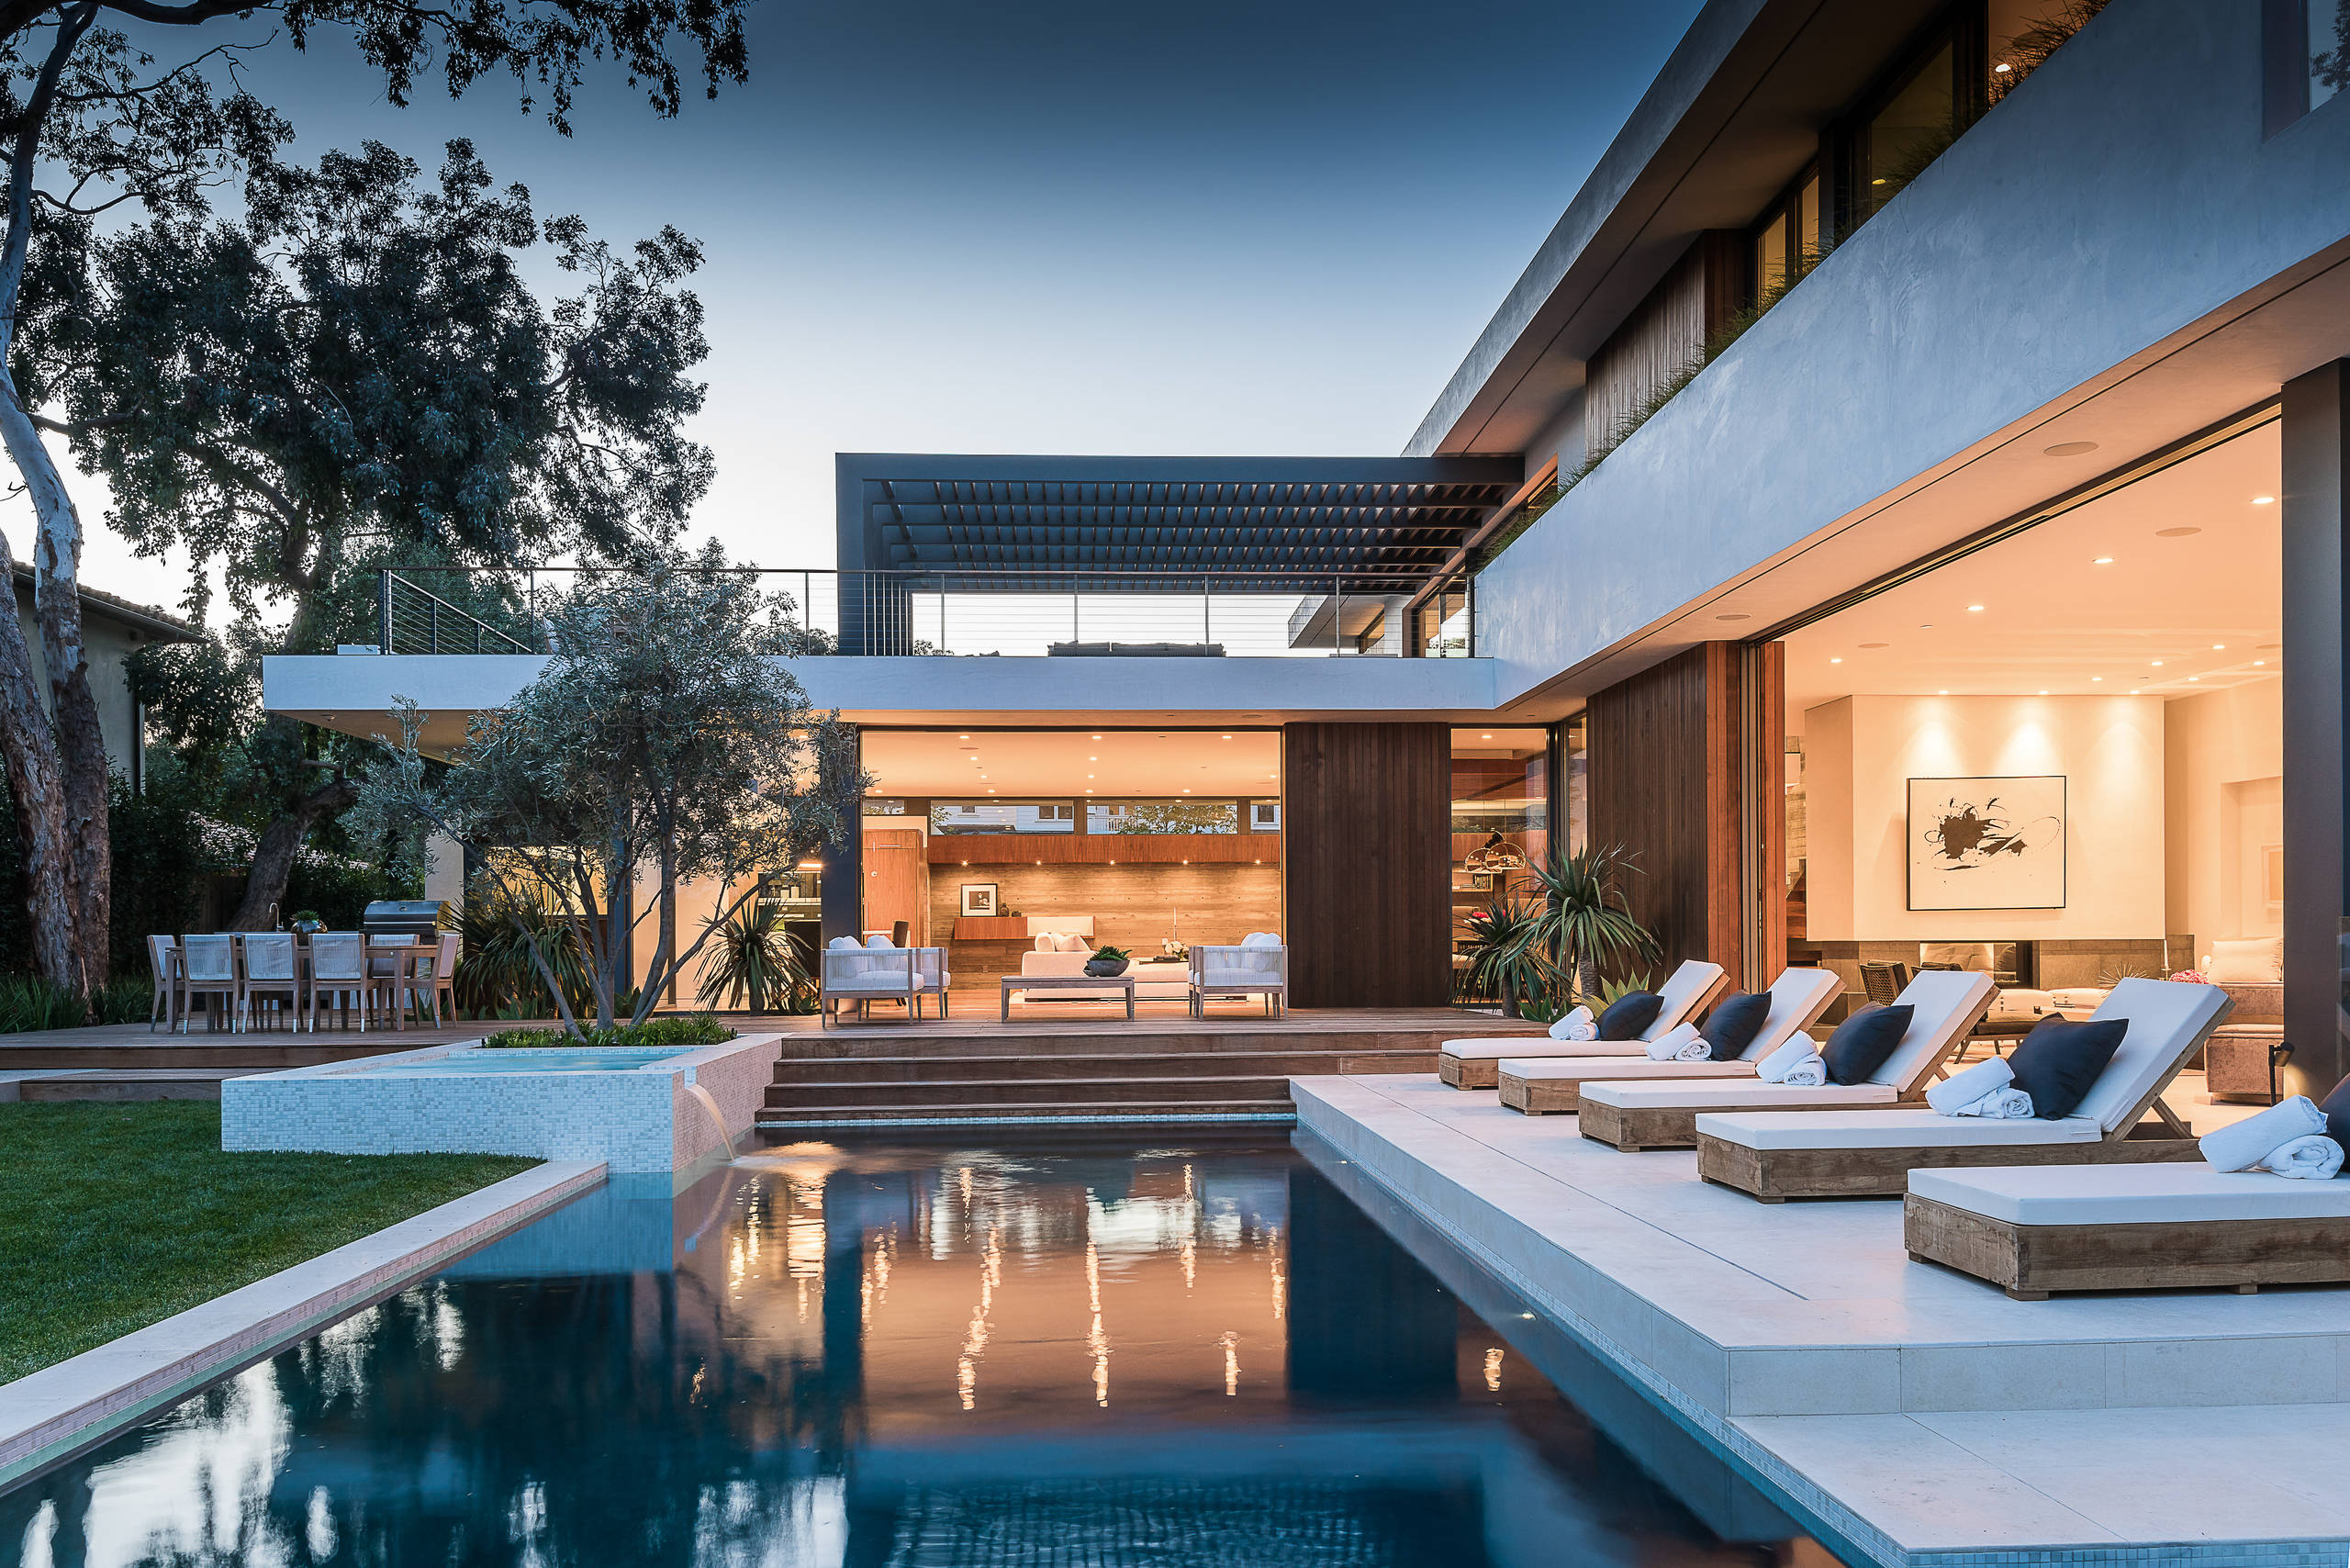 18 Dazzling Modern Swimming Pool Designs - The Ultimate ... on Modern Backyard Ideas With Pool id=21893